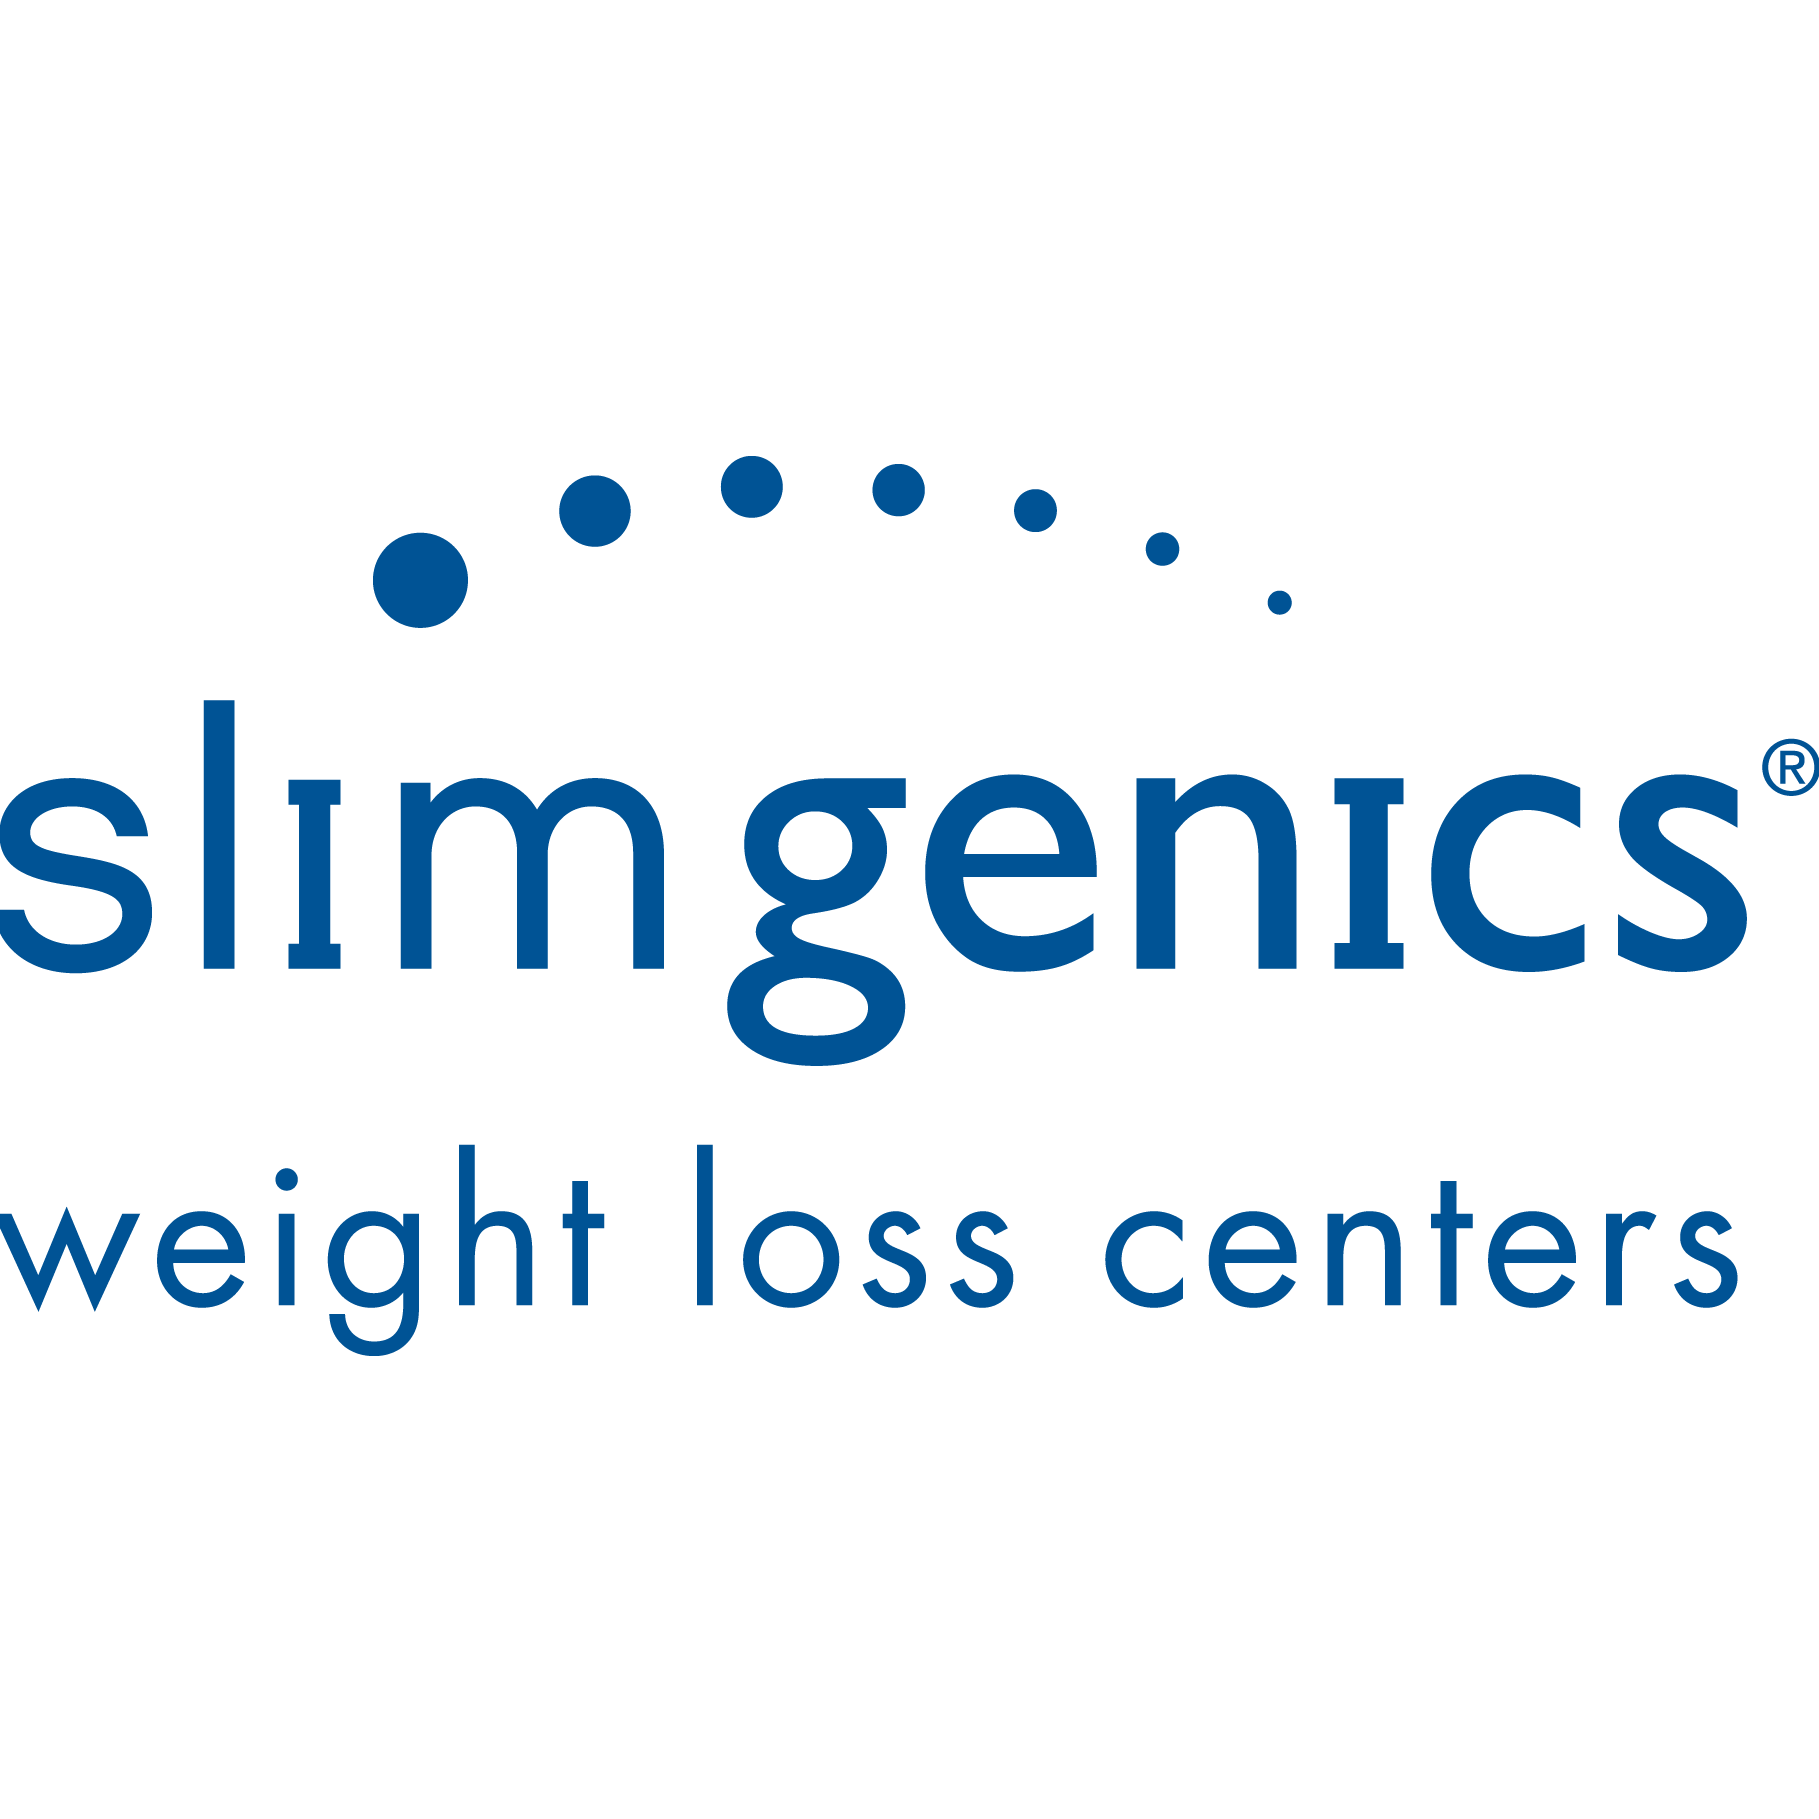 SlimGenics Weight Loss Center - Woodbury, MN - Weight Management